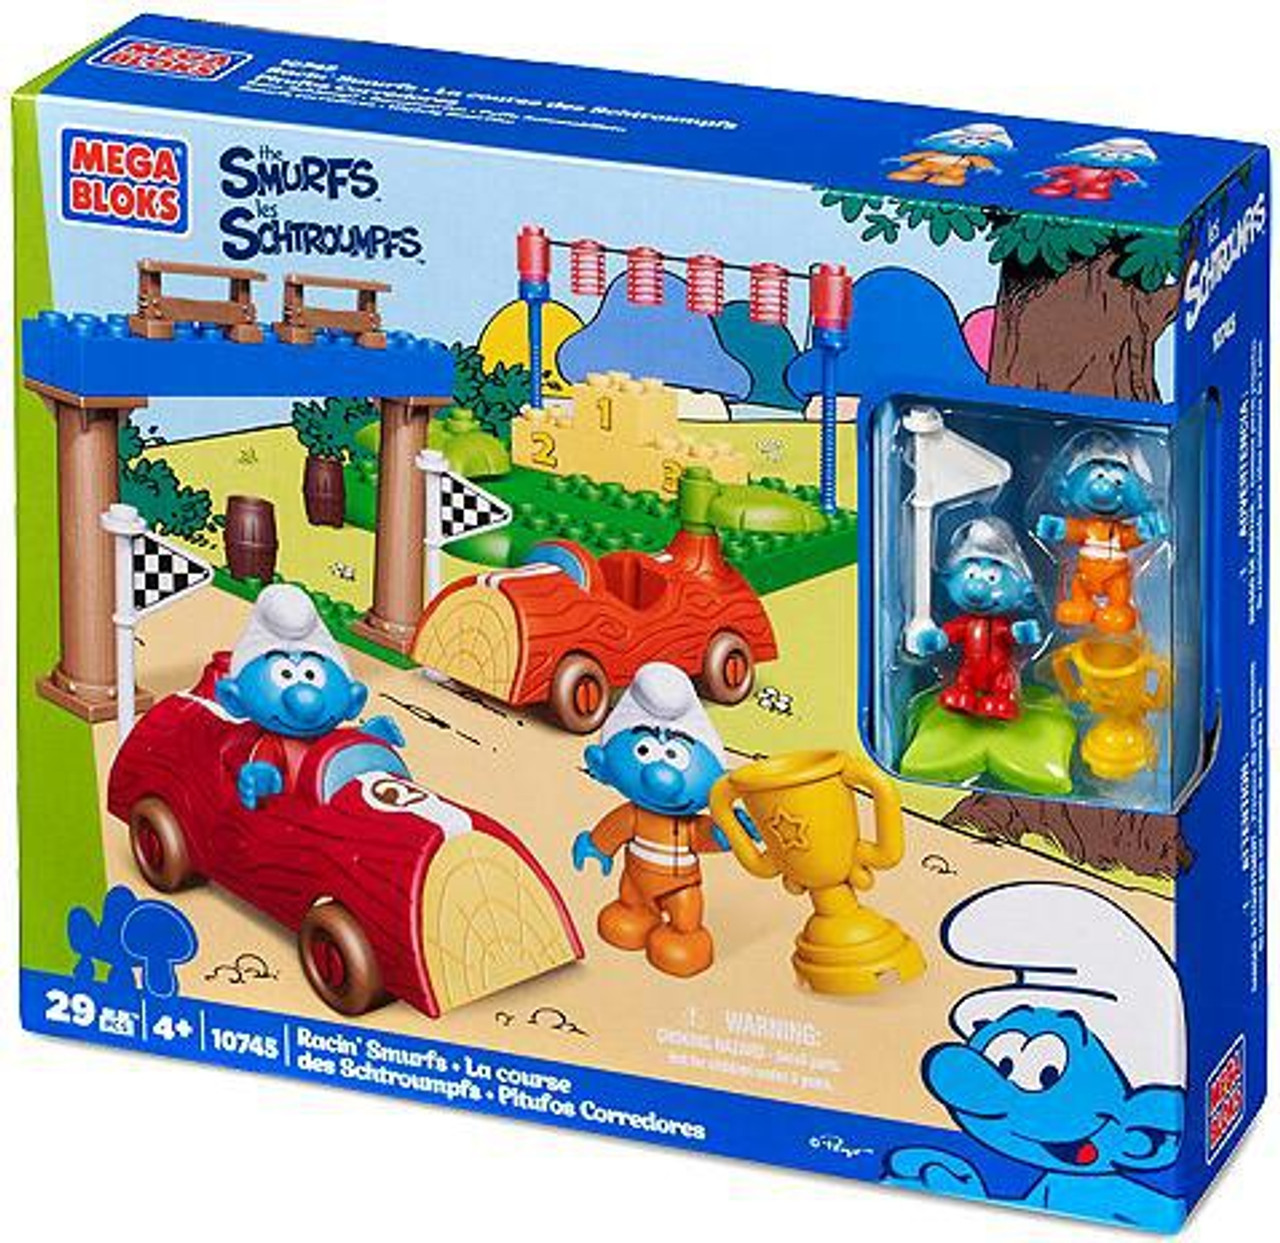 Mega Bloks The Smurfs Smurf Race Set #10745